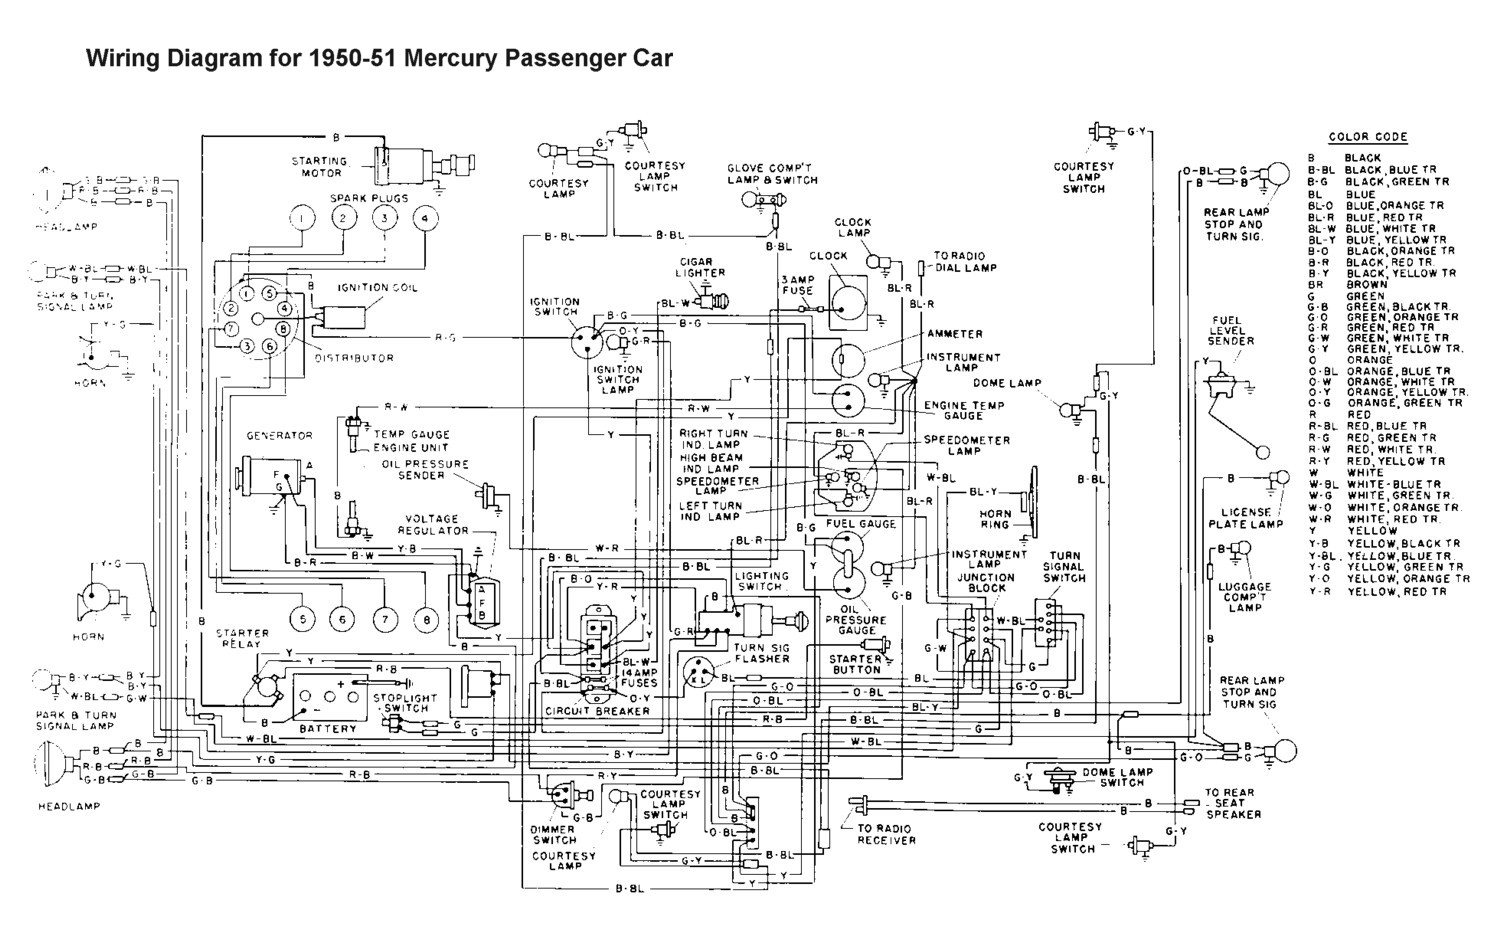 Cadillac Northstar Engine Diagram 2002, Cadillac, Free